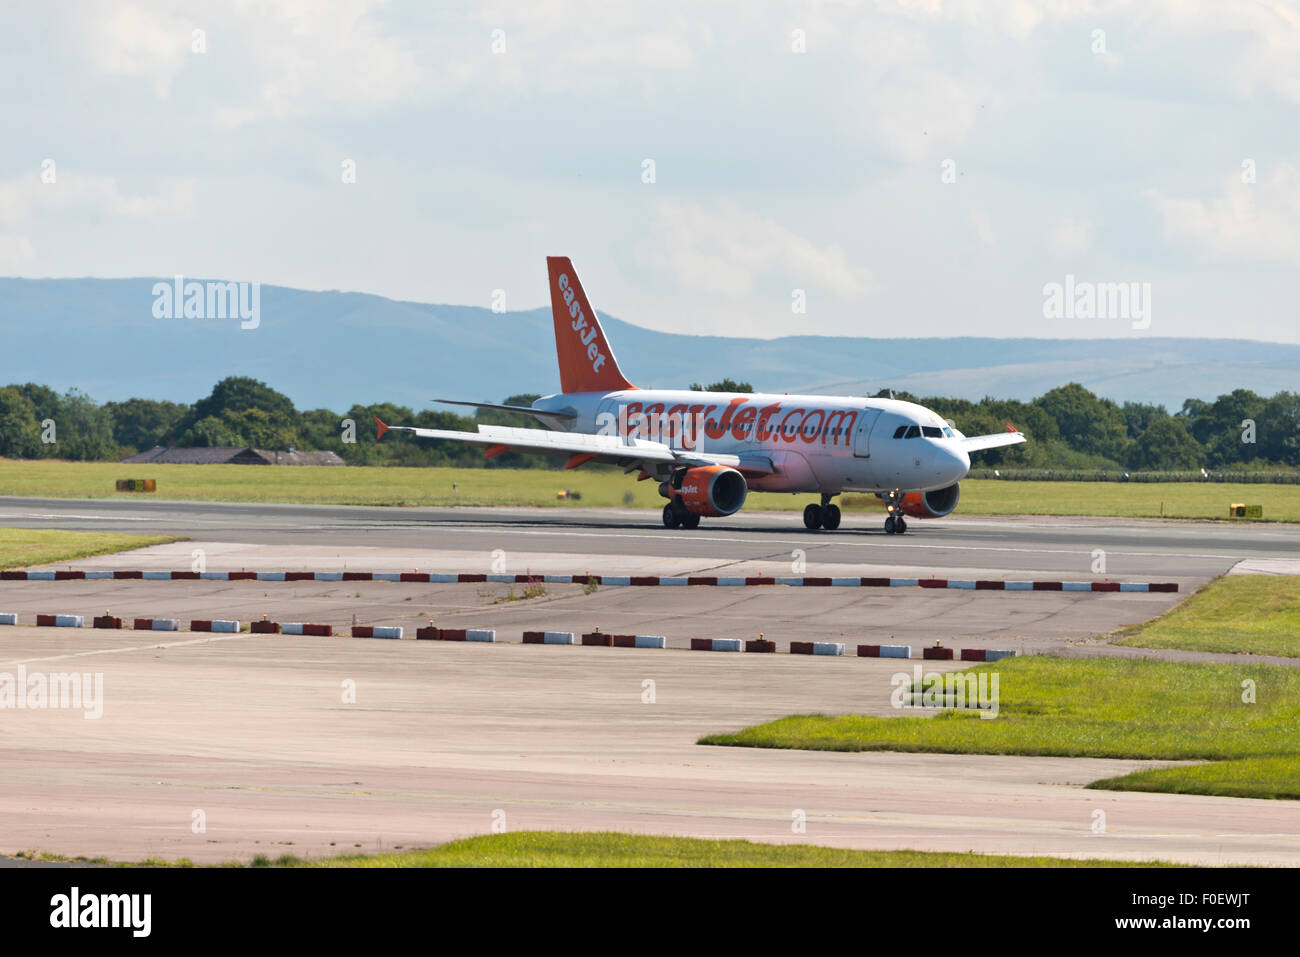 easyJet Airbus A320-200 Manchester Airport england uk arrivals - Stock Image